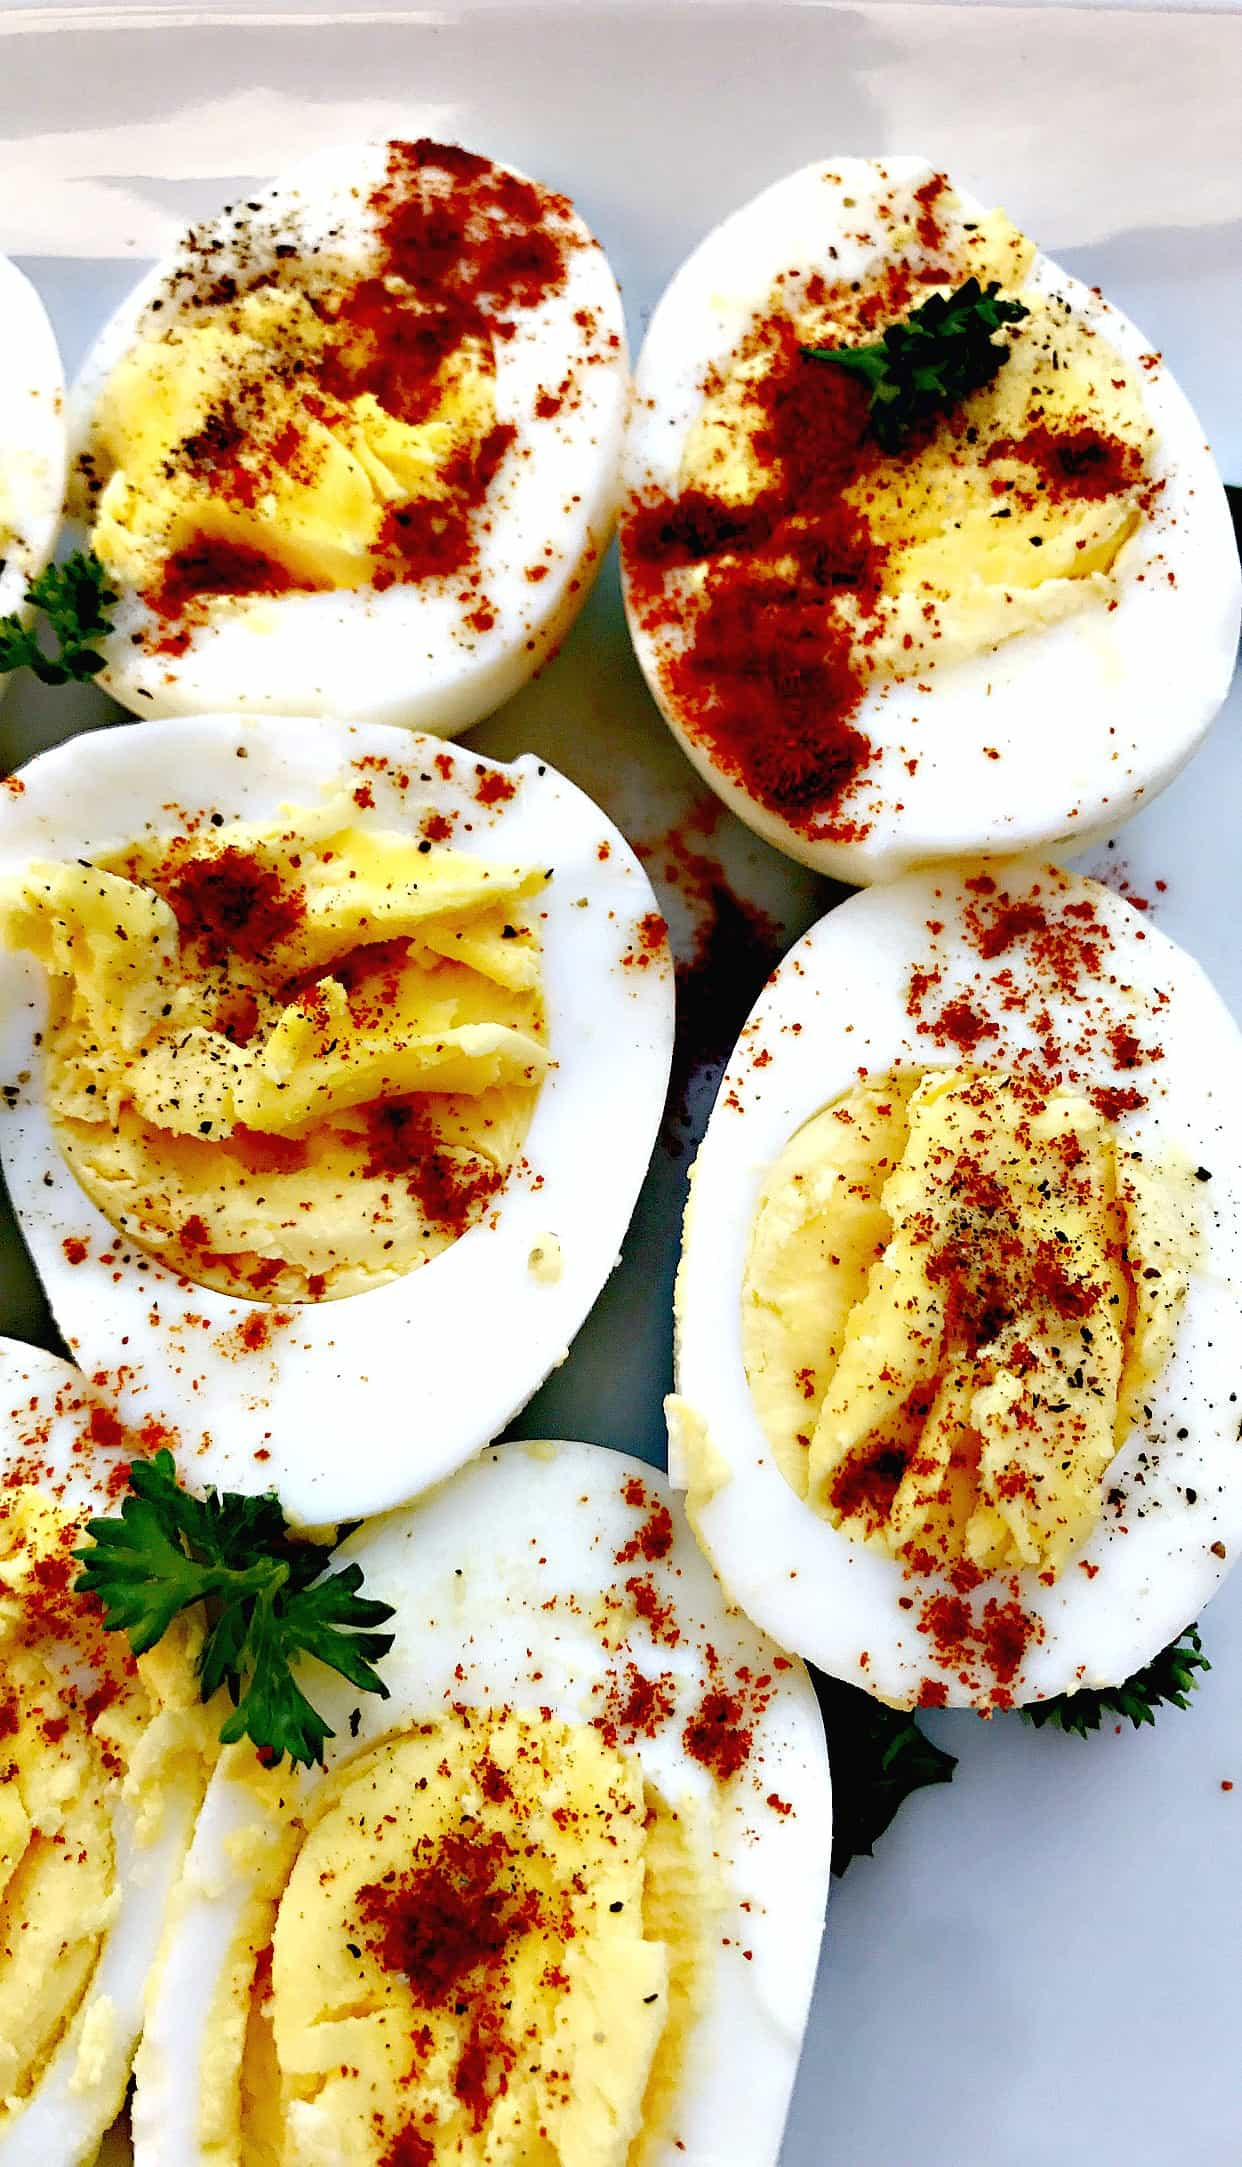 How Long To Cook Hard Boiled Eggs In Airfryer